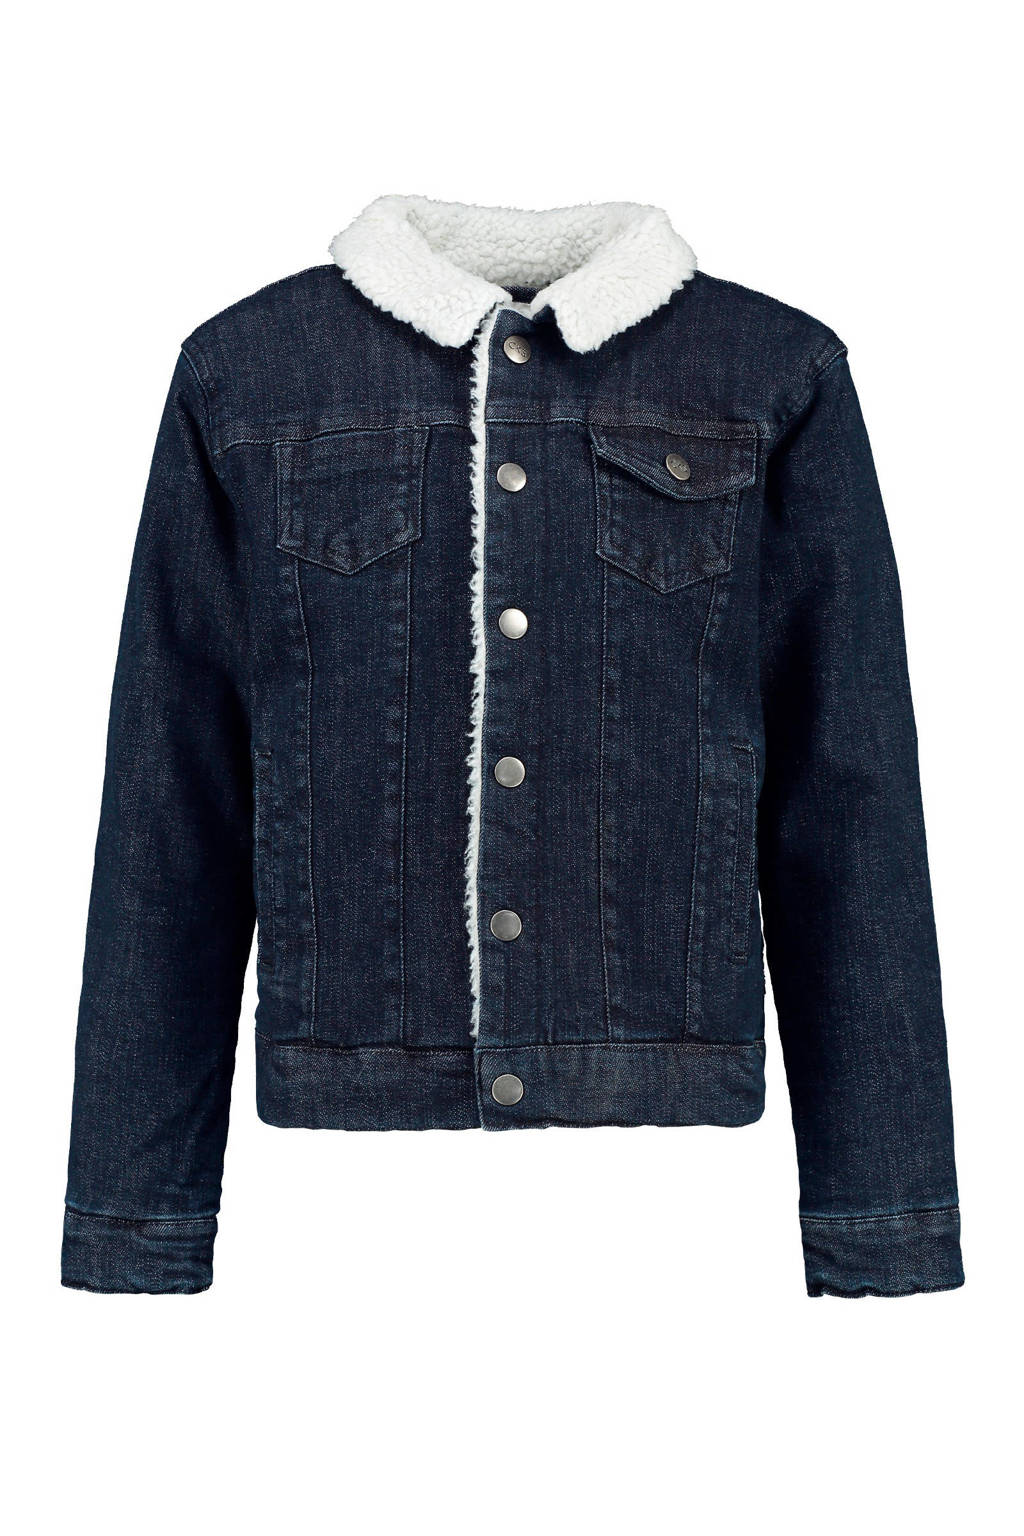 CKS KIDS winterjas Yasander dark denim, Dark denim